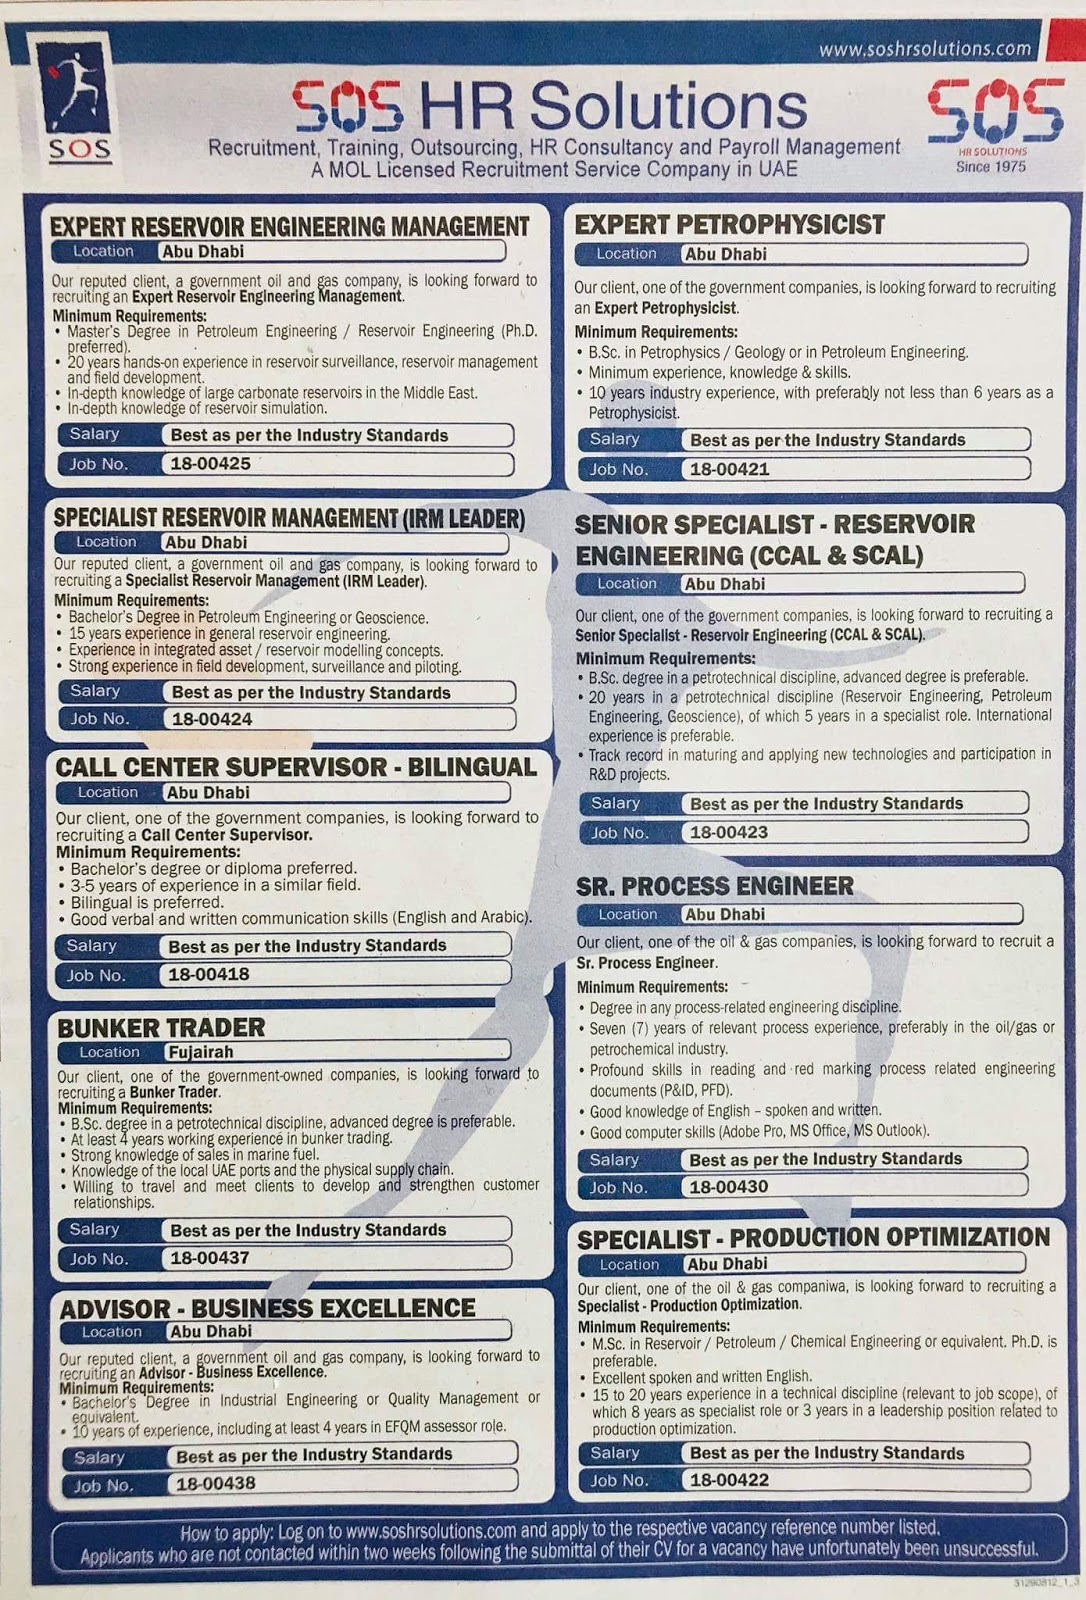 Required Multiple Vacancies Local Hiring UAE Source Gulf